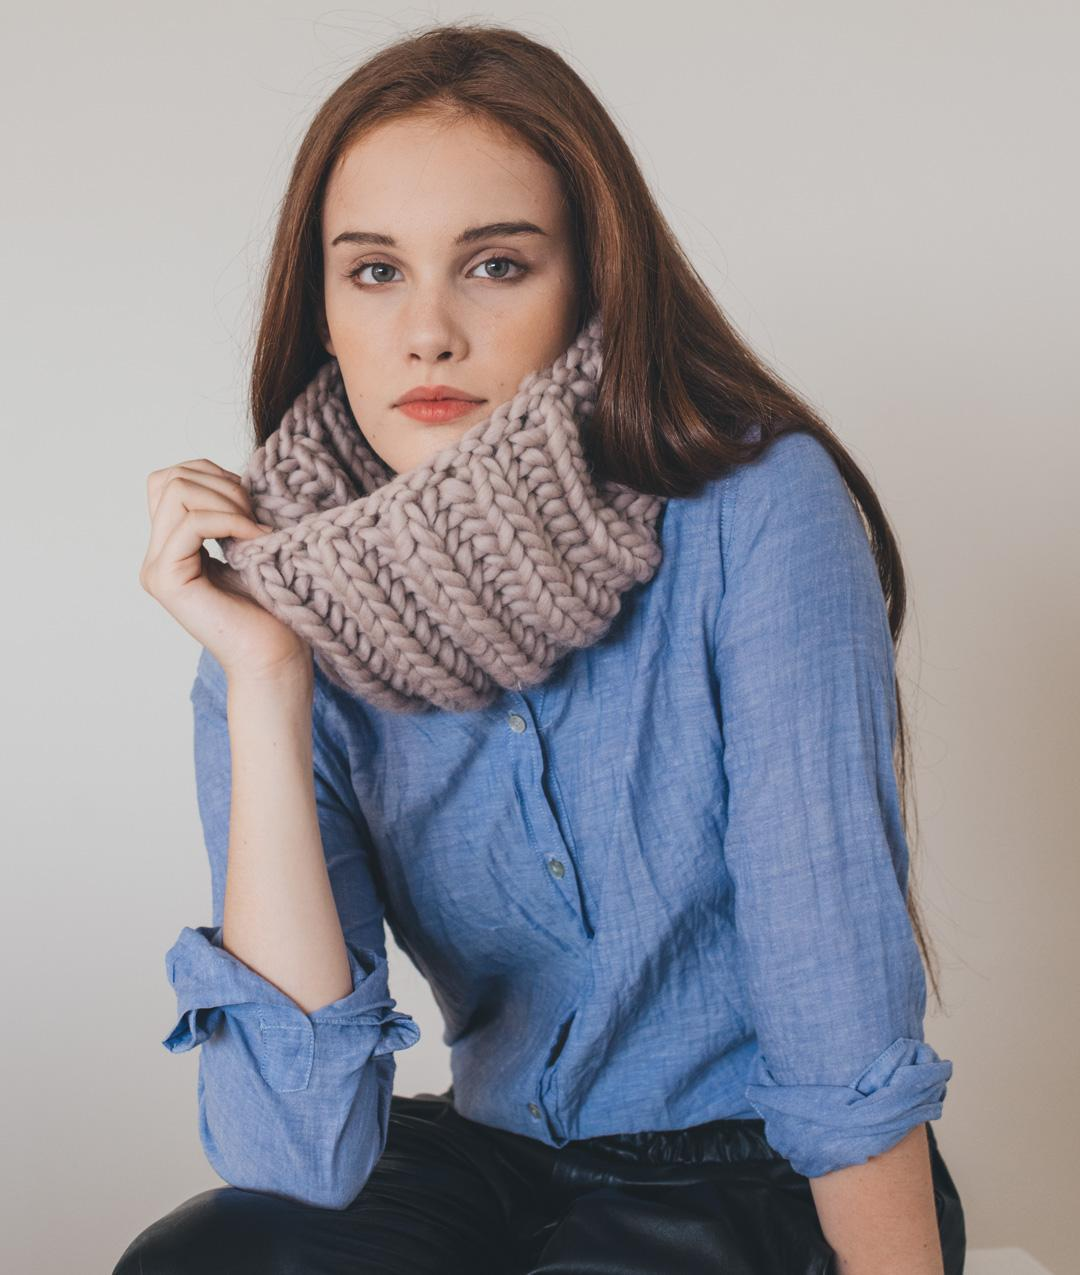 Scarves and Snoods - Wool - Brioche Collar - 1